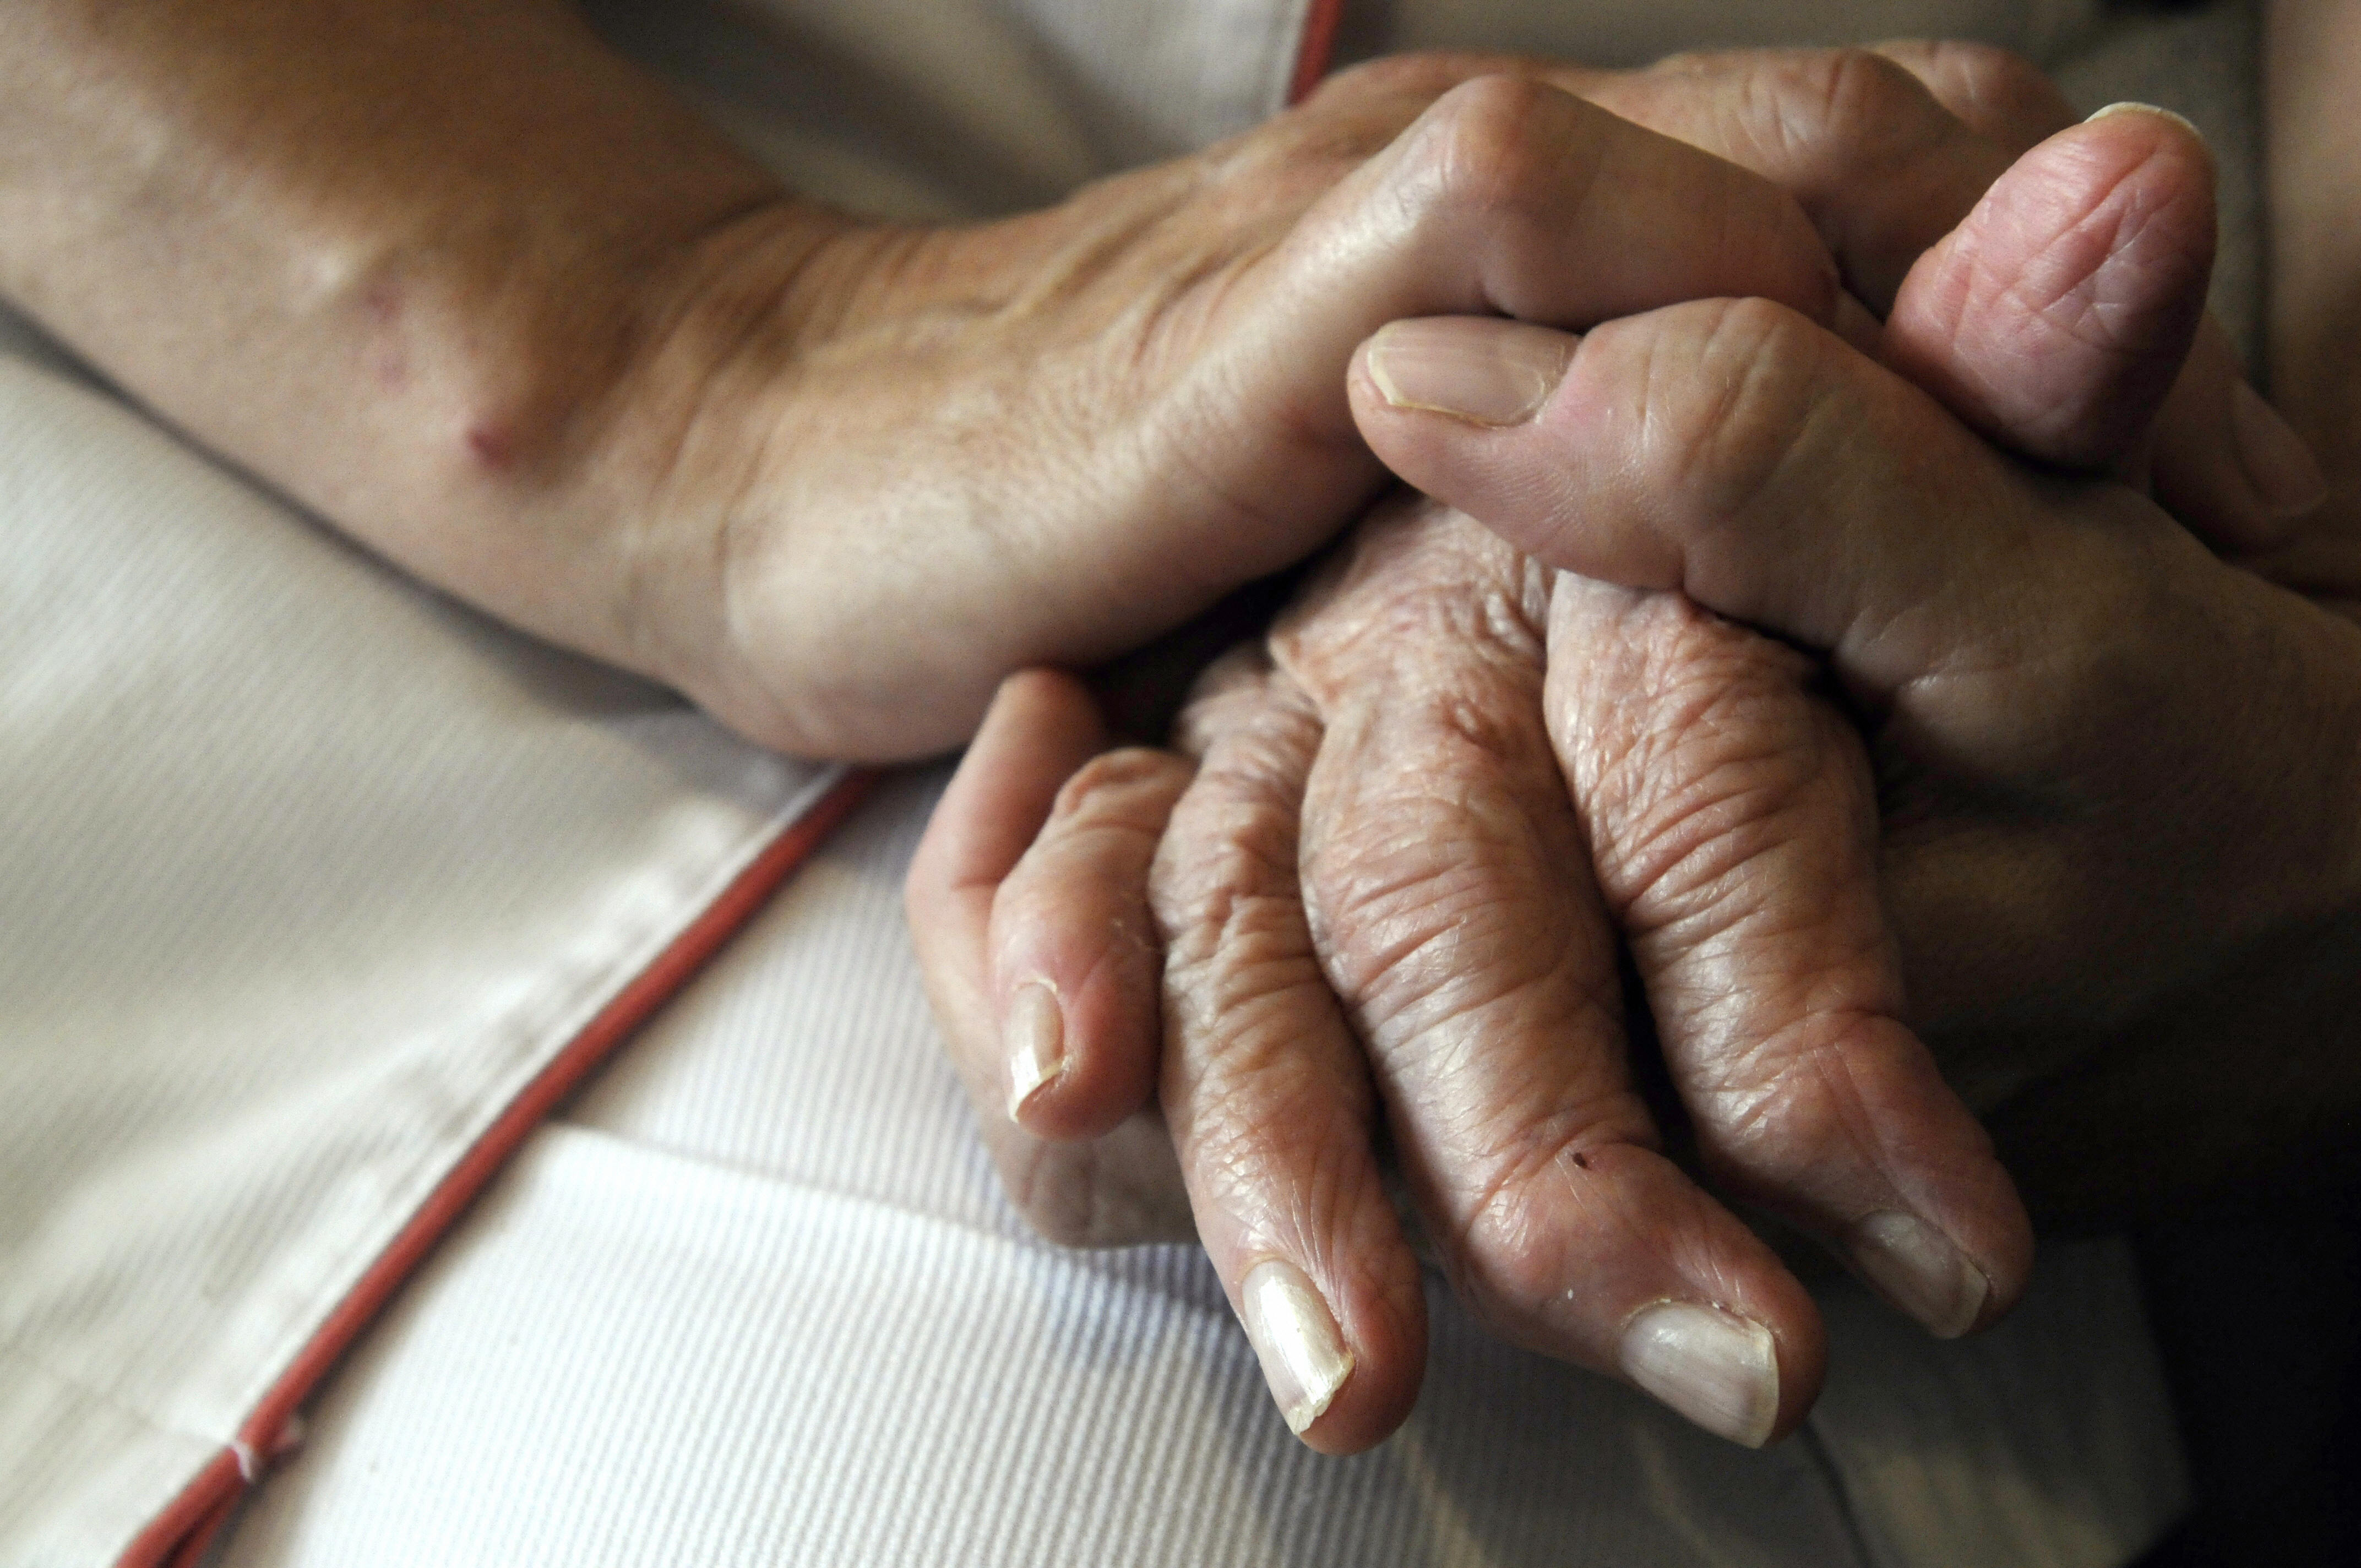 A nurse holds the hands of a person suffering from Alzheimer's disease on September 21, 2009 at Les Fontaines retirement home in Lutterbach , eastern France.